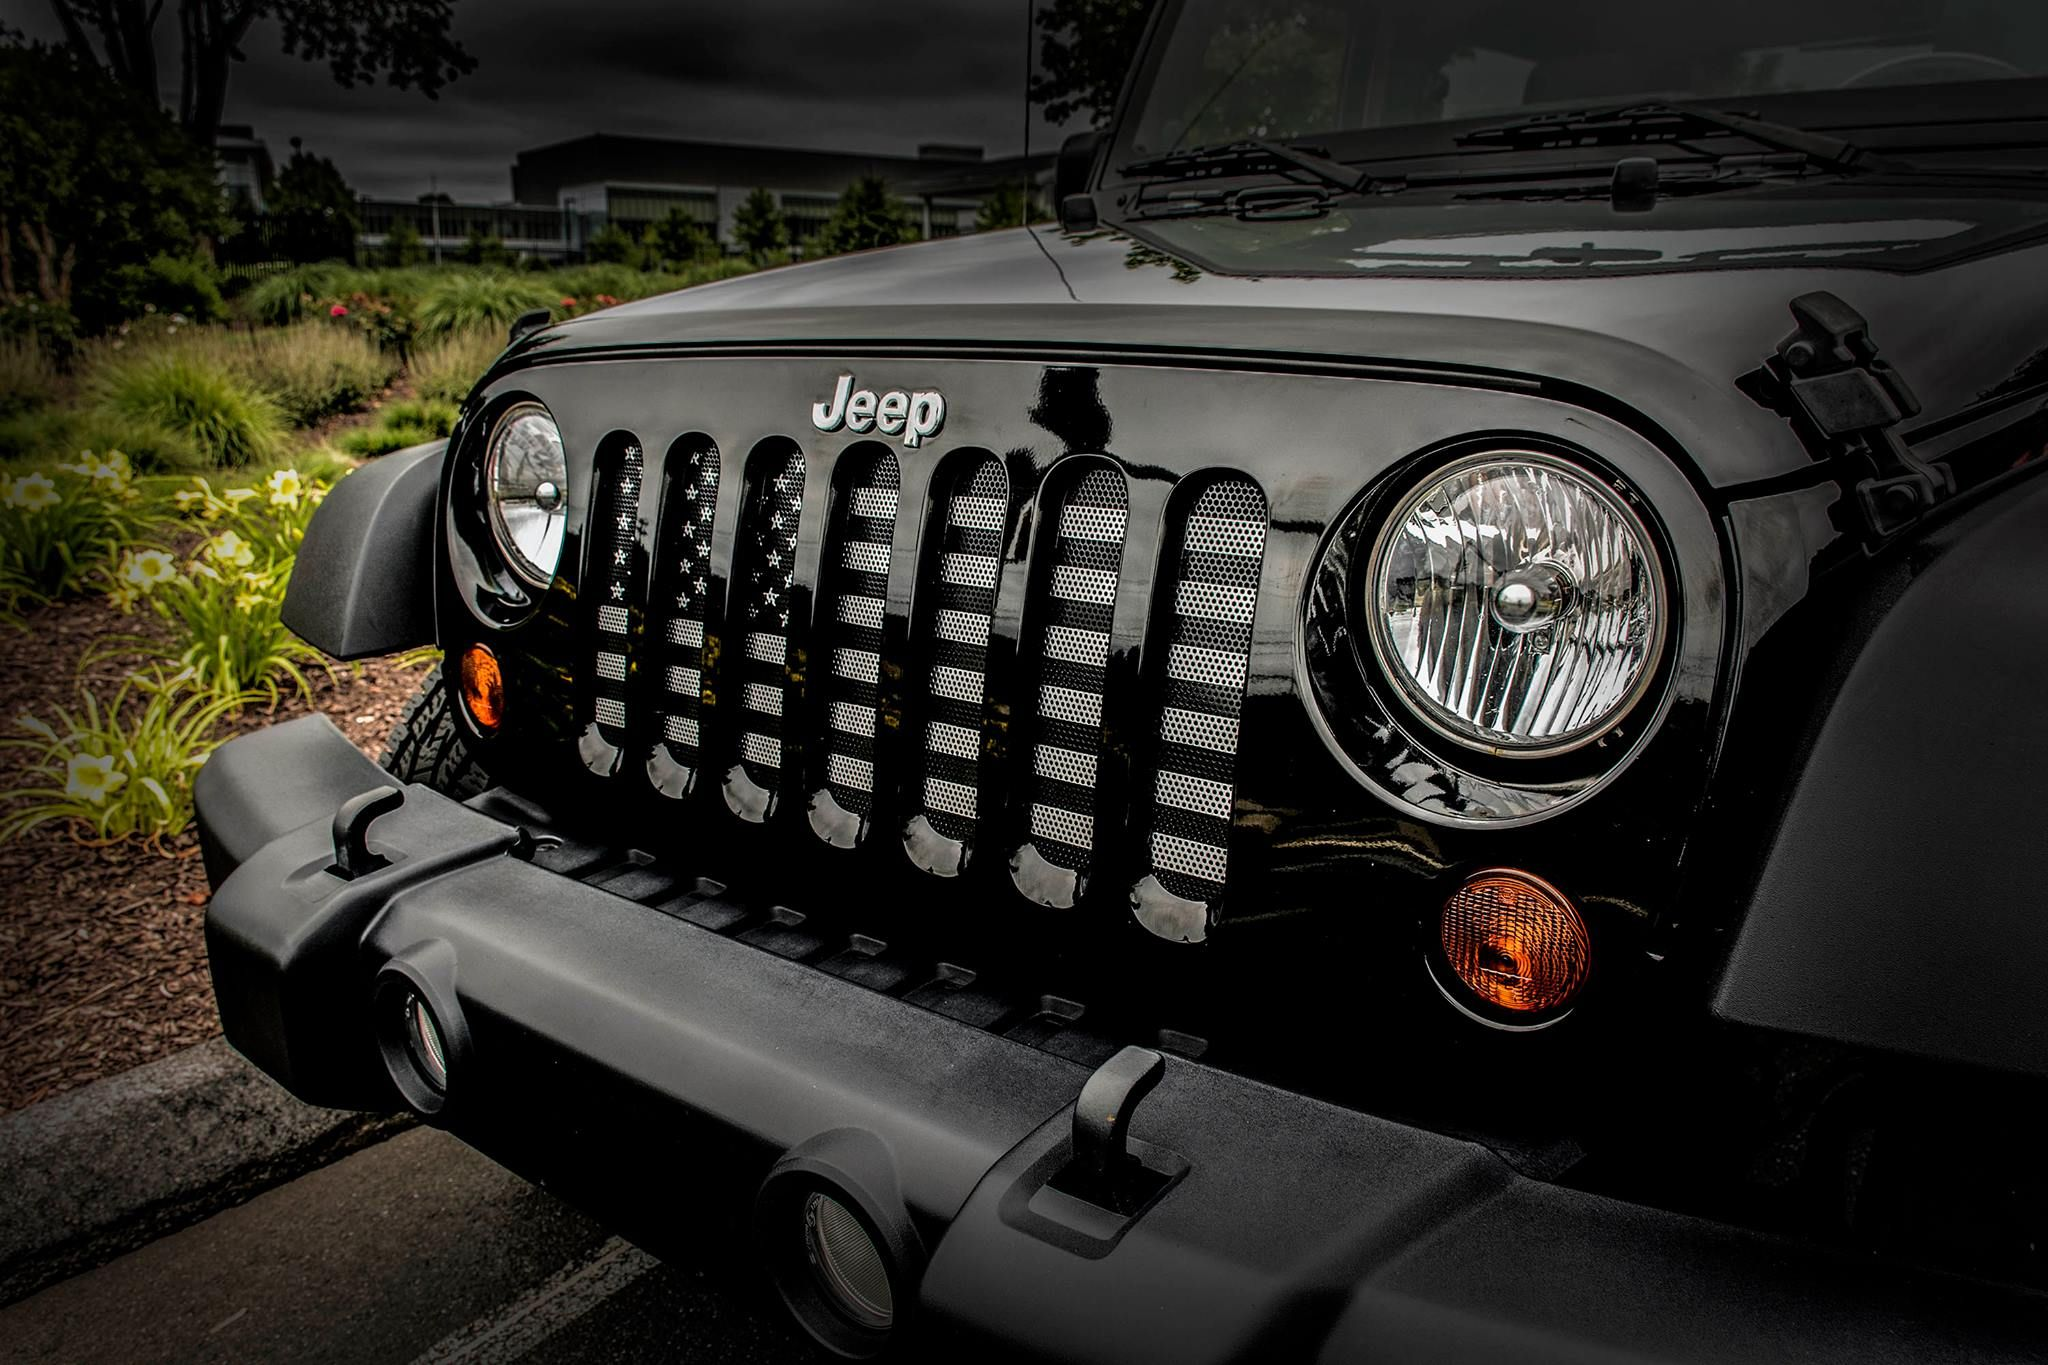 small resolution of made in the usa patriotic flag grille insert ships free transform the look of